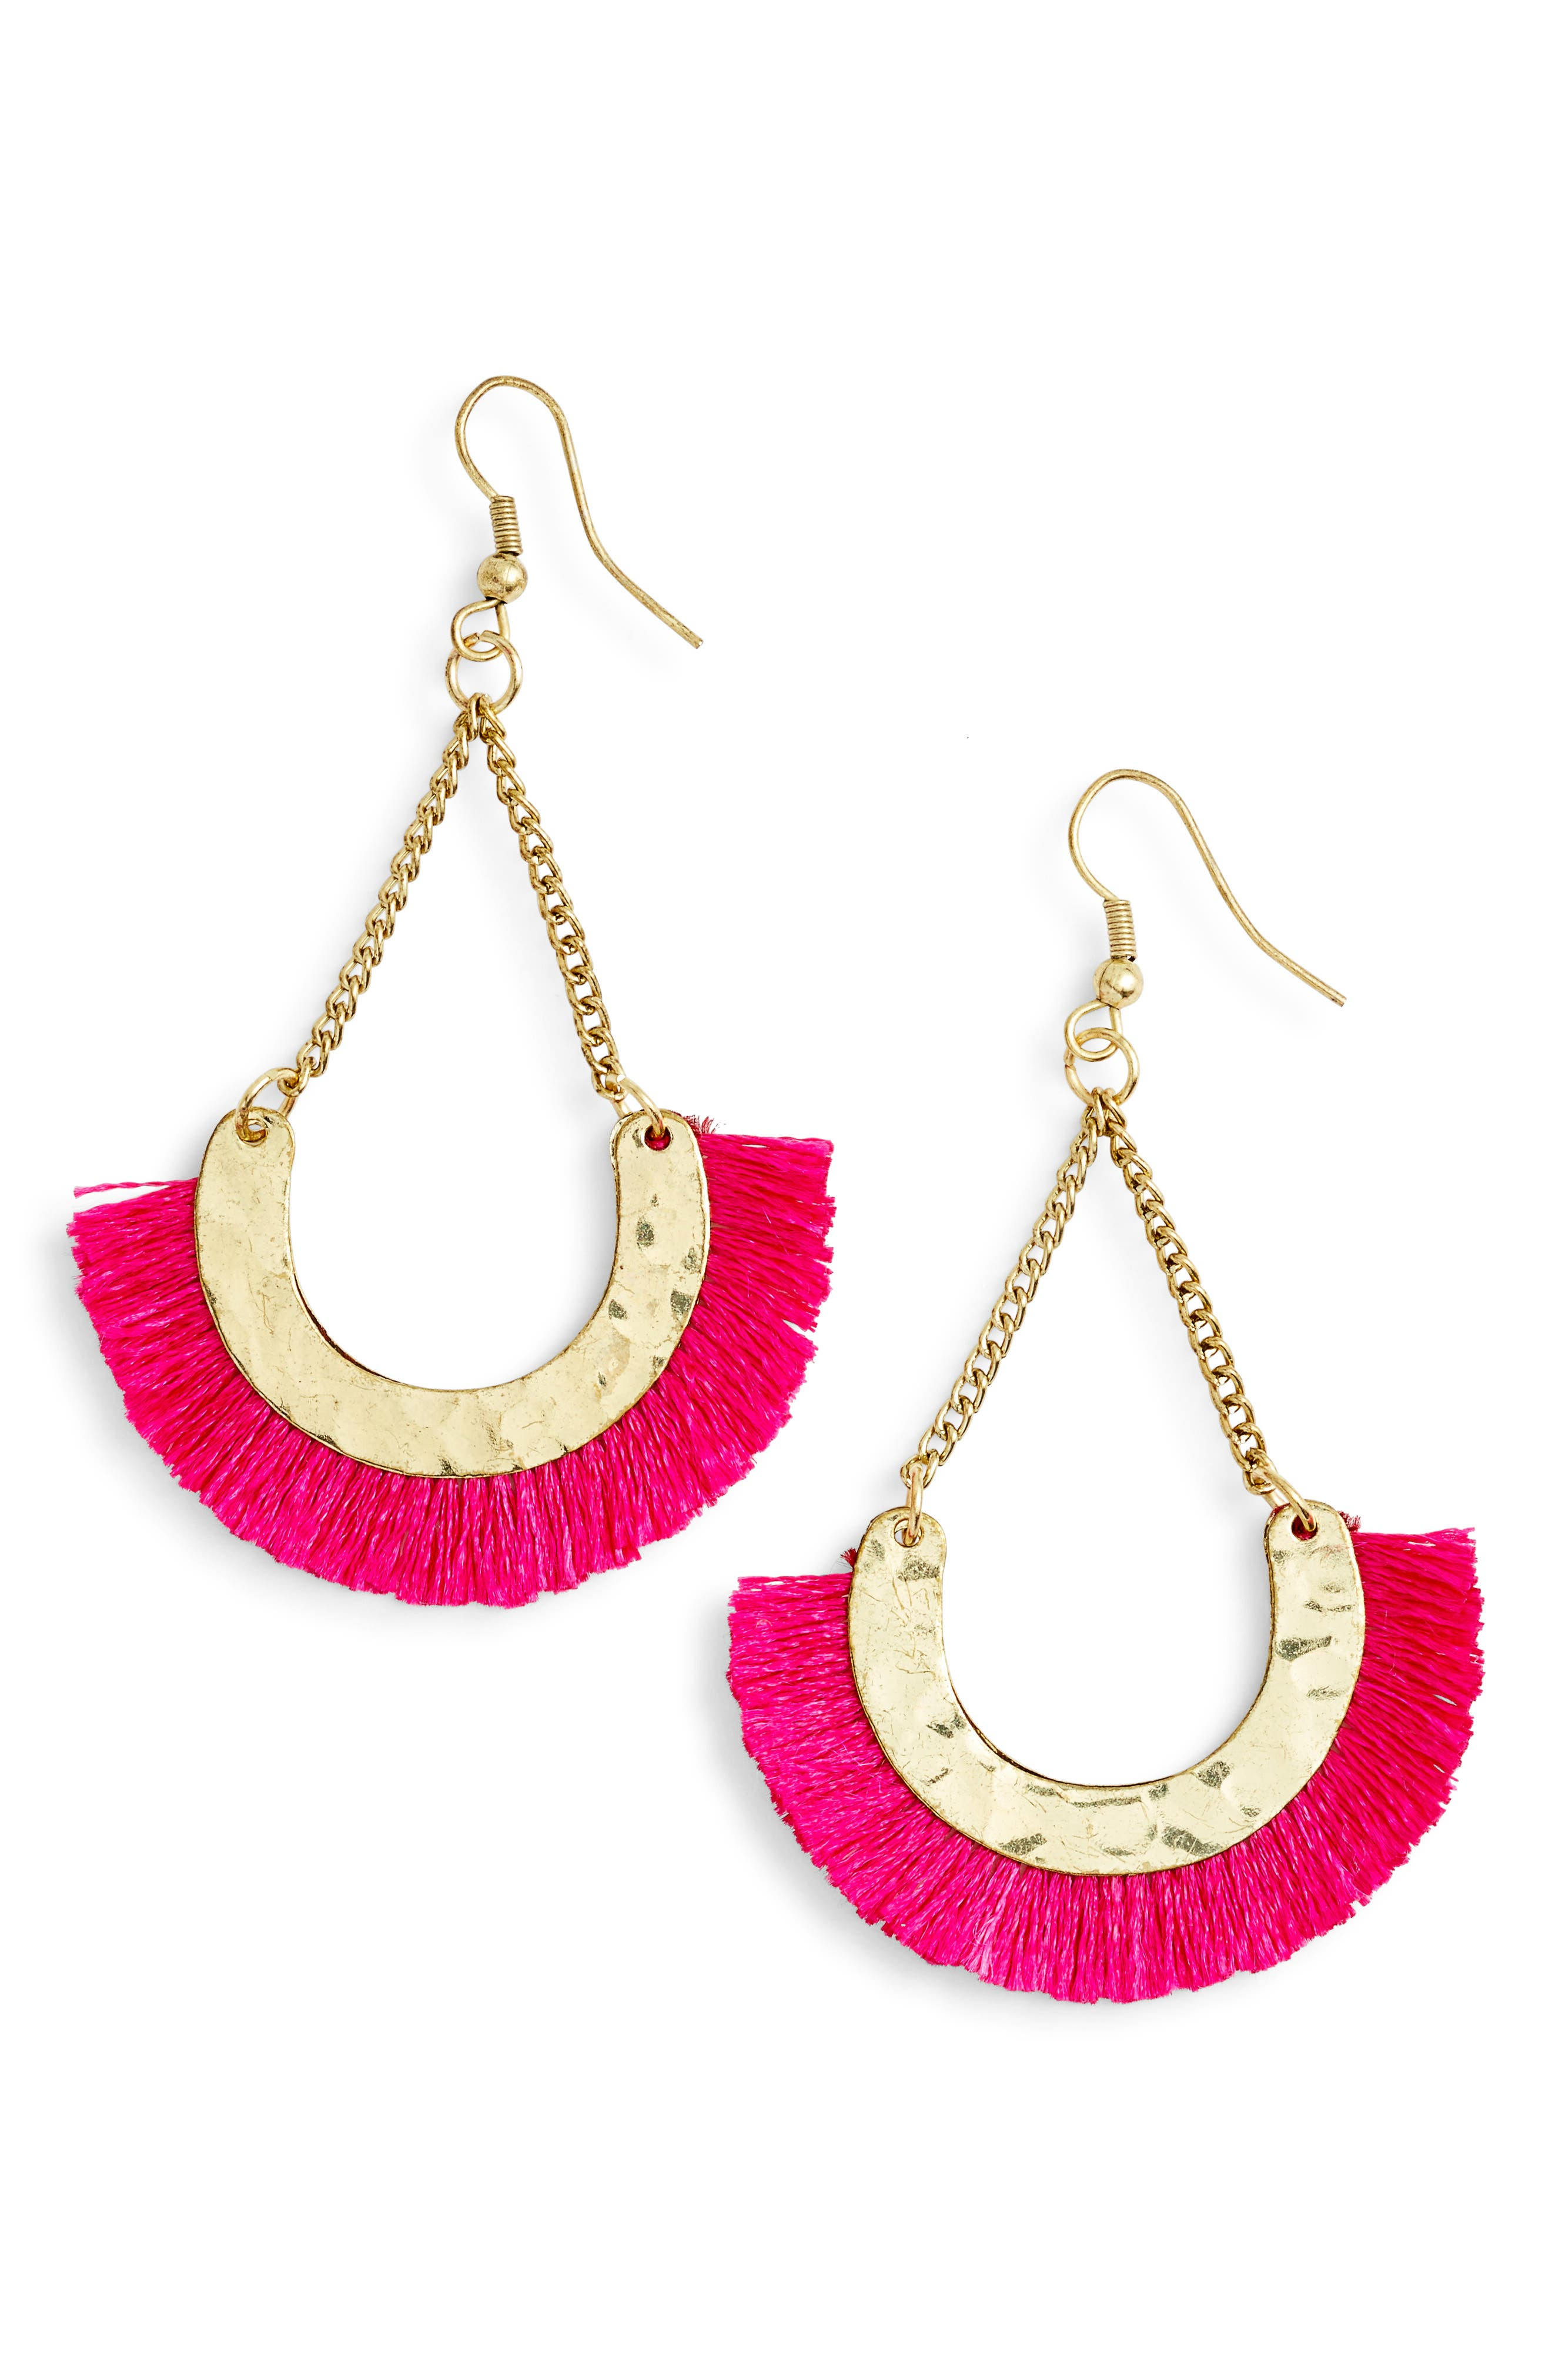 Maldives Fringed Fan Earrings,                         Main,                         color,